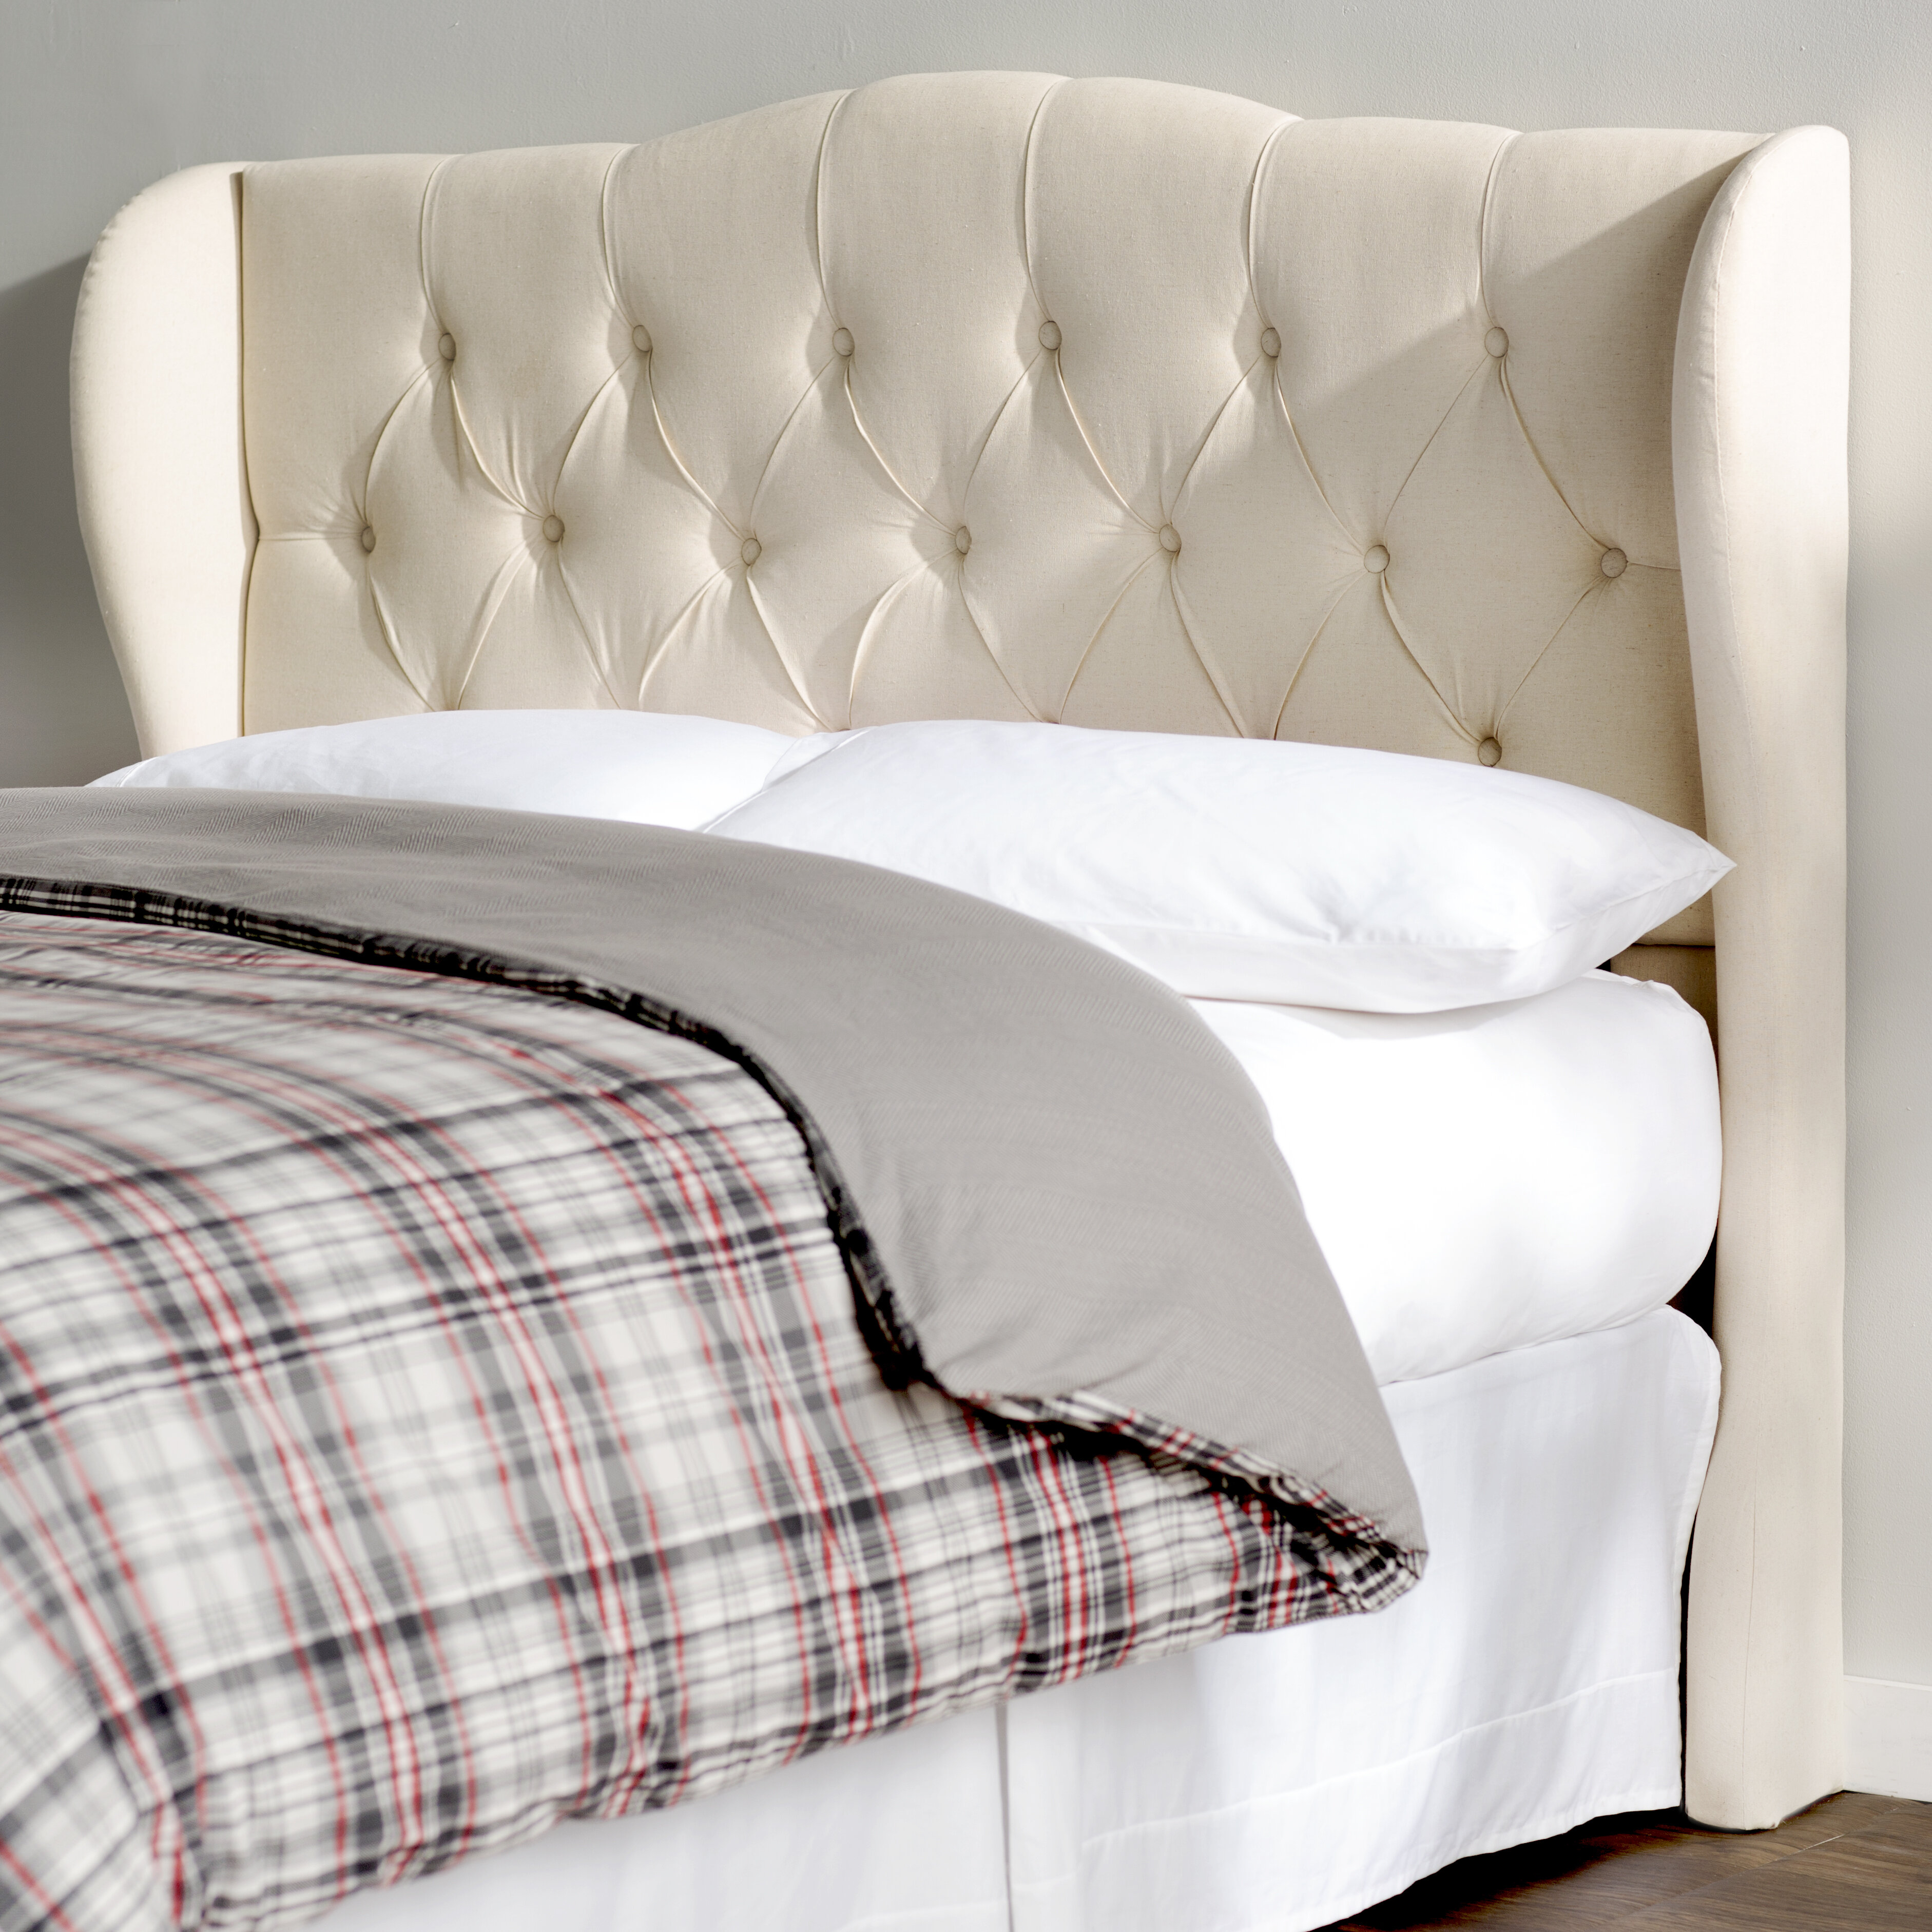 headboard details eng wingback tufted headboards living bedroom nailheads products gray dorel sourceimage with